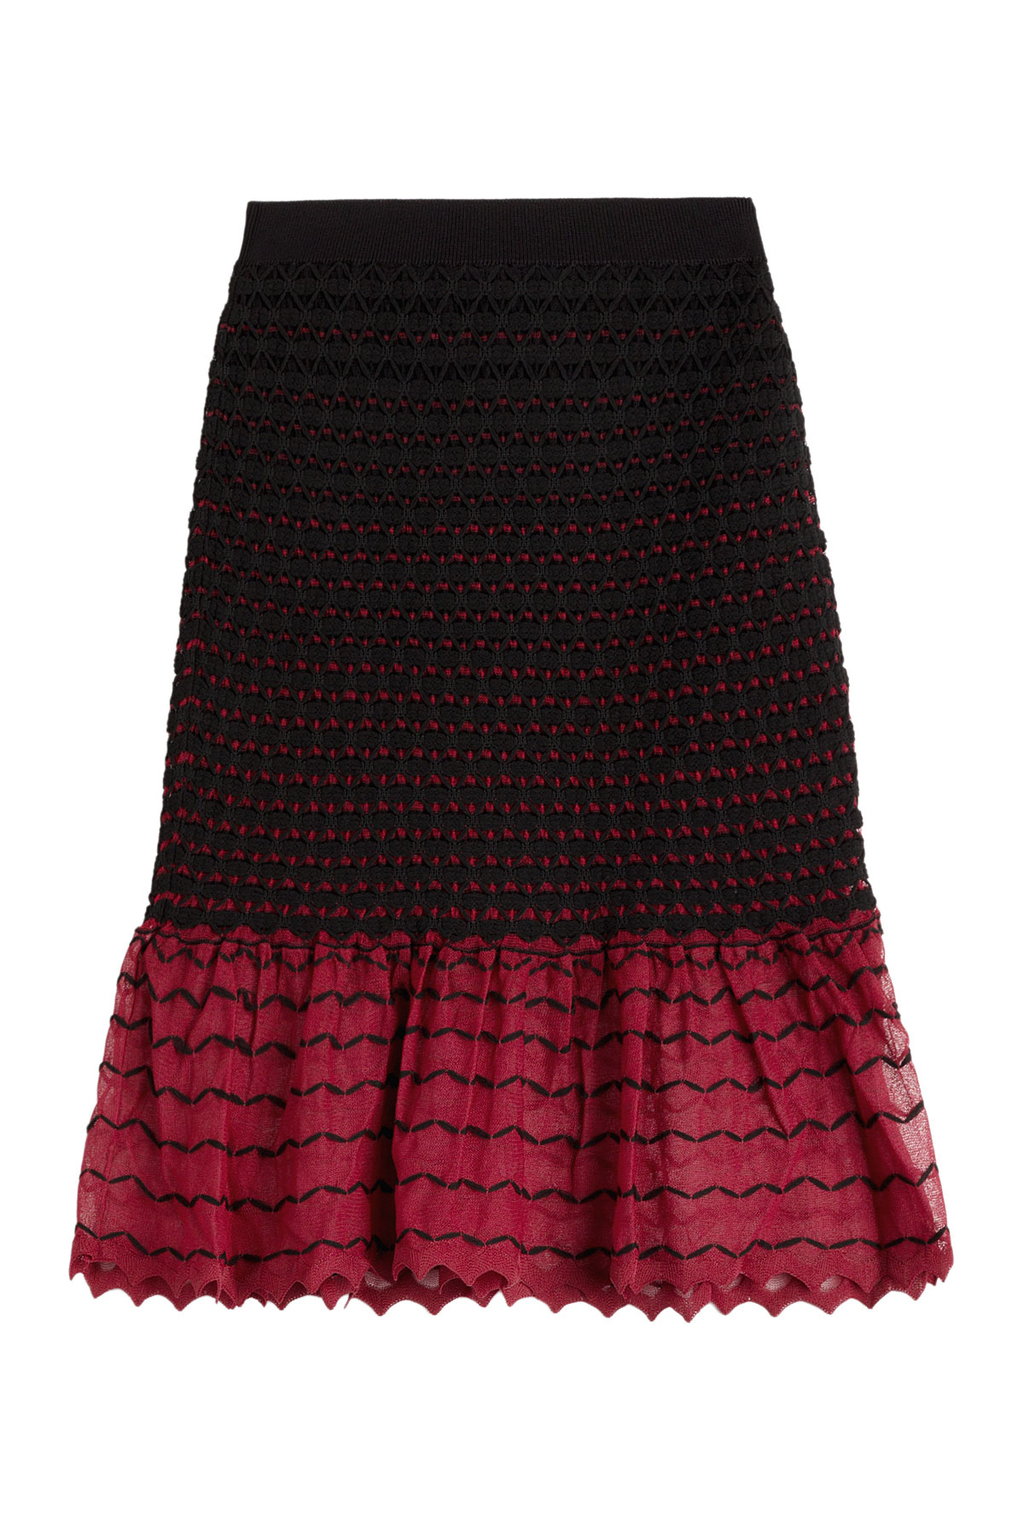 Textured Knit Skirt With Contrast Hem Black - style: pencil; fit: body skimming; pattern: herringbone/tweed; waist: mid/regular rise; secondary colour: hot pink; predominant colour: black; occasions: evening; length: on the knee; fibres: polyester/polyamide - mix; hip detail: soft pleats at hip/draping at hip/flared at hip; texture group: knits/crochet; pattern type: knitted - other; pattern size: standard (bottom); multicoloured: multicoloured; season: s/s 2016; wardrobe: event